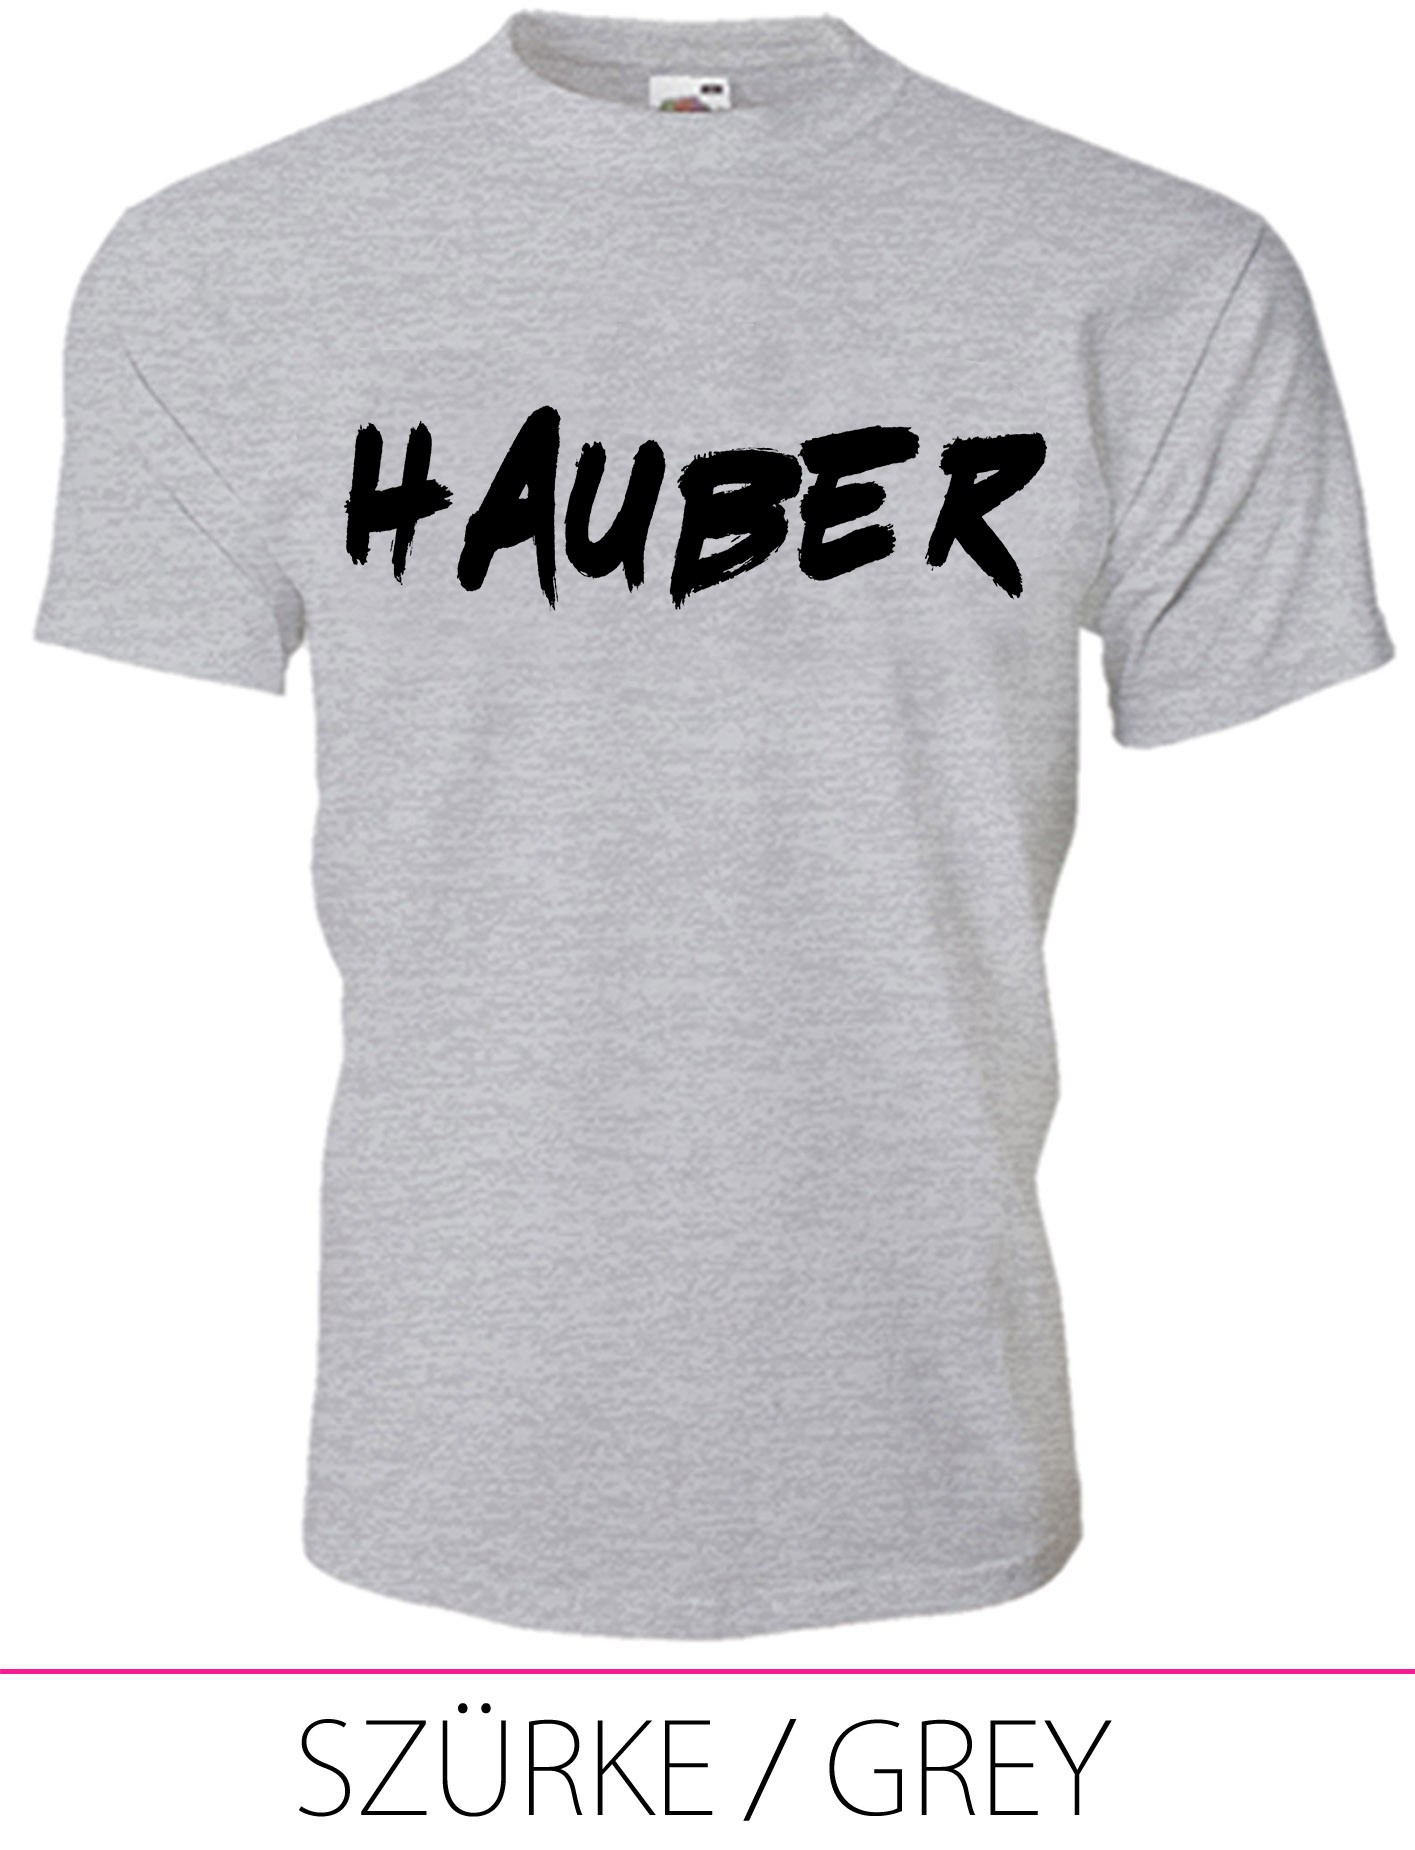 KIDS CREW NECK T-SHIRT HAUBER GREY